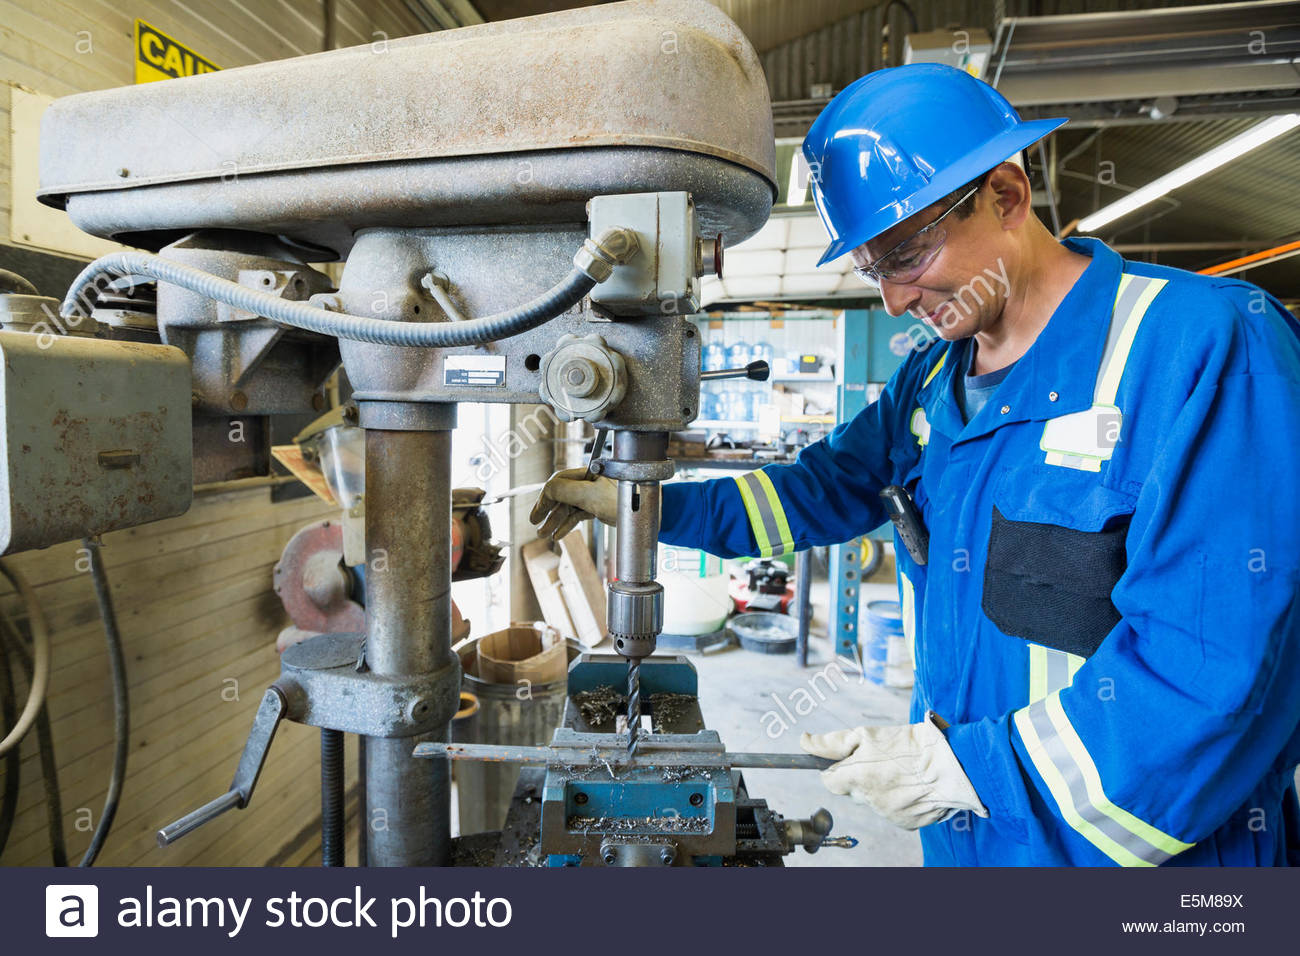 Male worker using equipment in gas plant - Stock Image